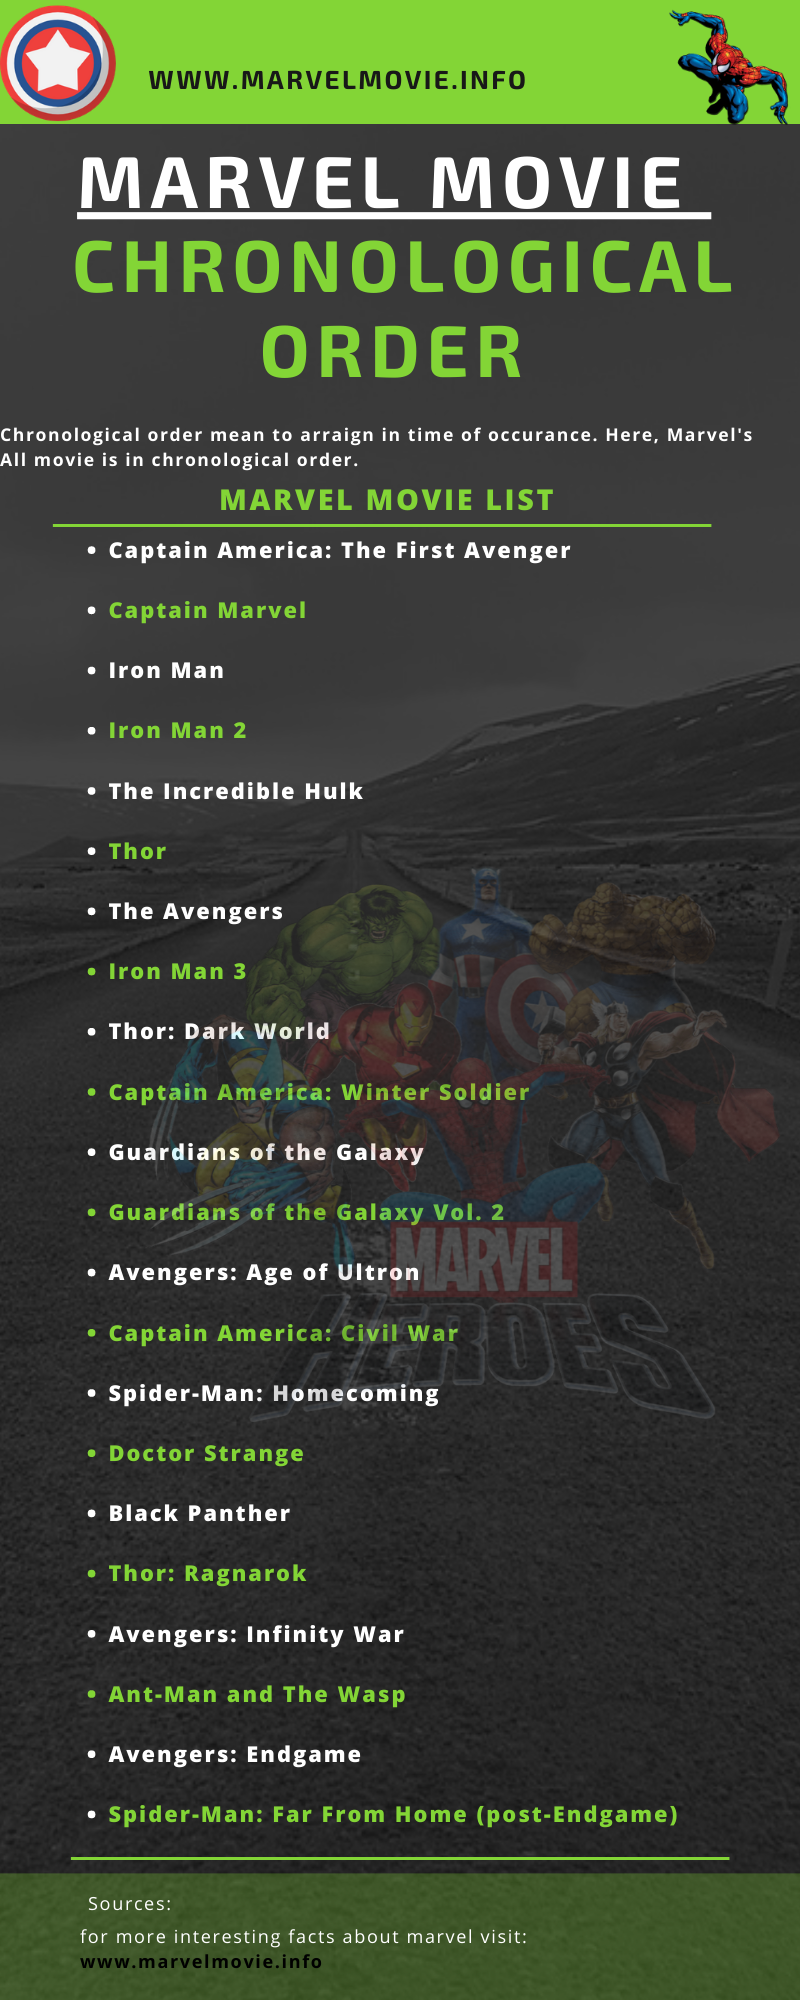 All Marvel Movie in Chronological Order